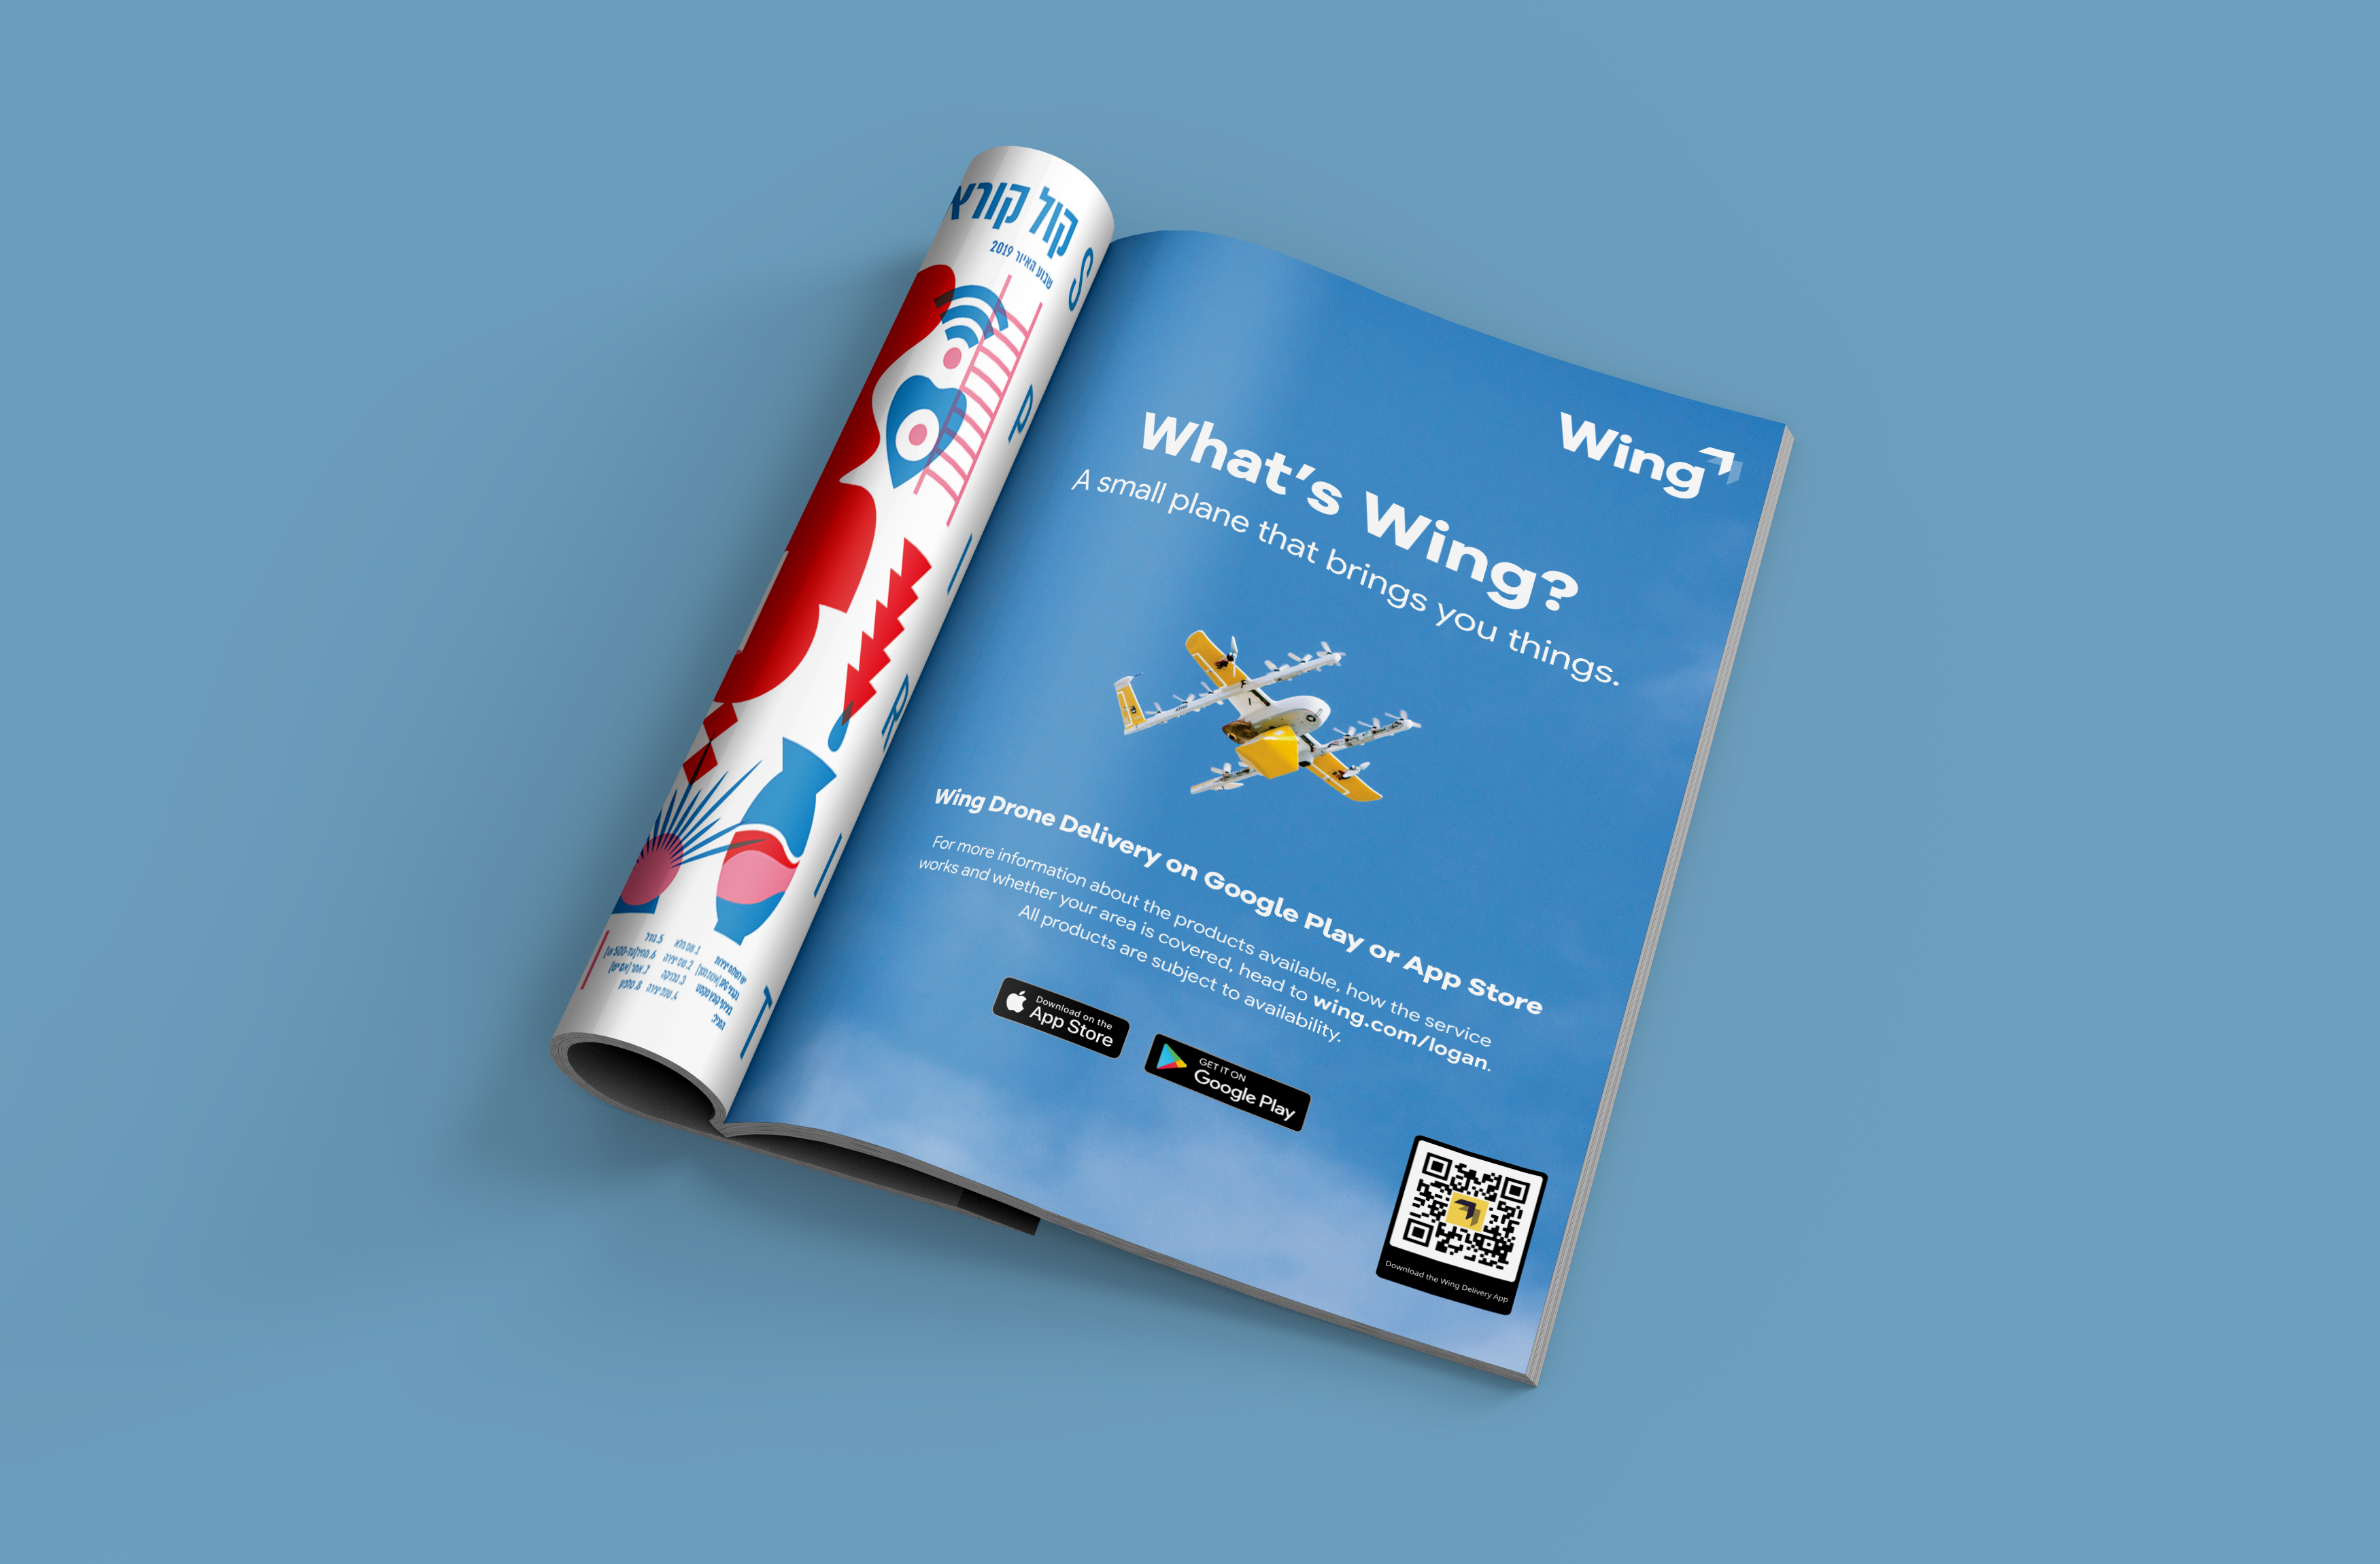 """An image of a page of a pull page spread in A5 magazine. The page has a half-page print ad featuring photography of the Wing commercial drone. The ad reads, """"What's Wing? A small plane that brings you things."""""""